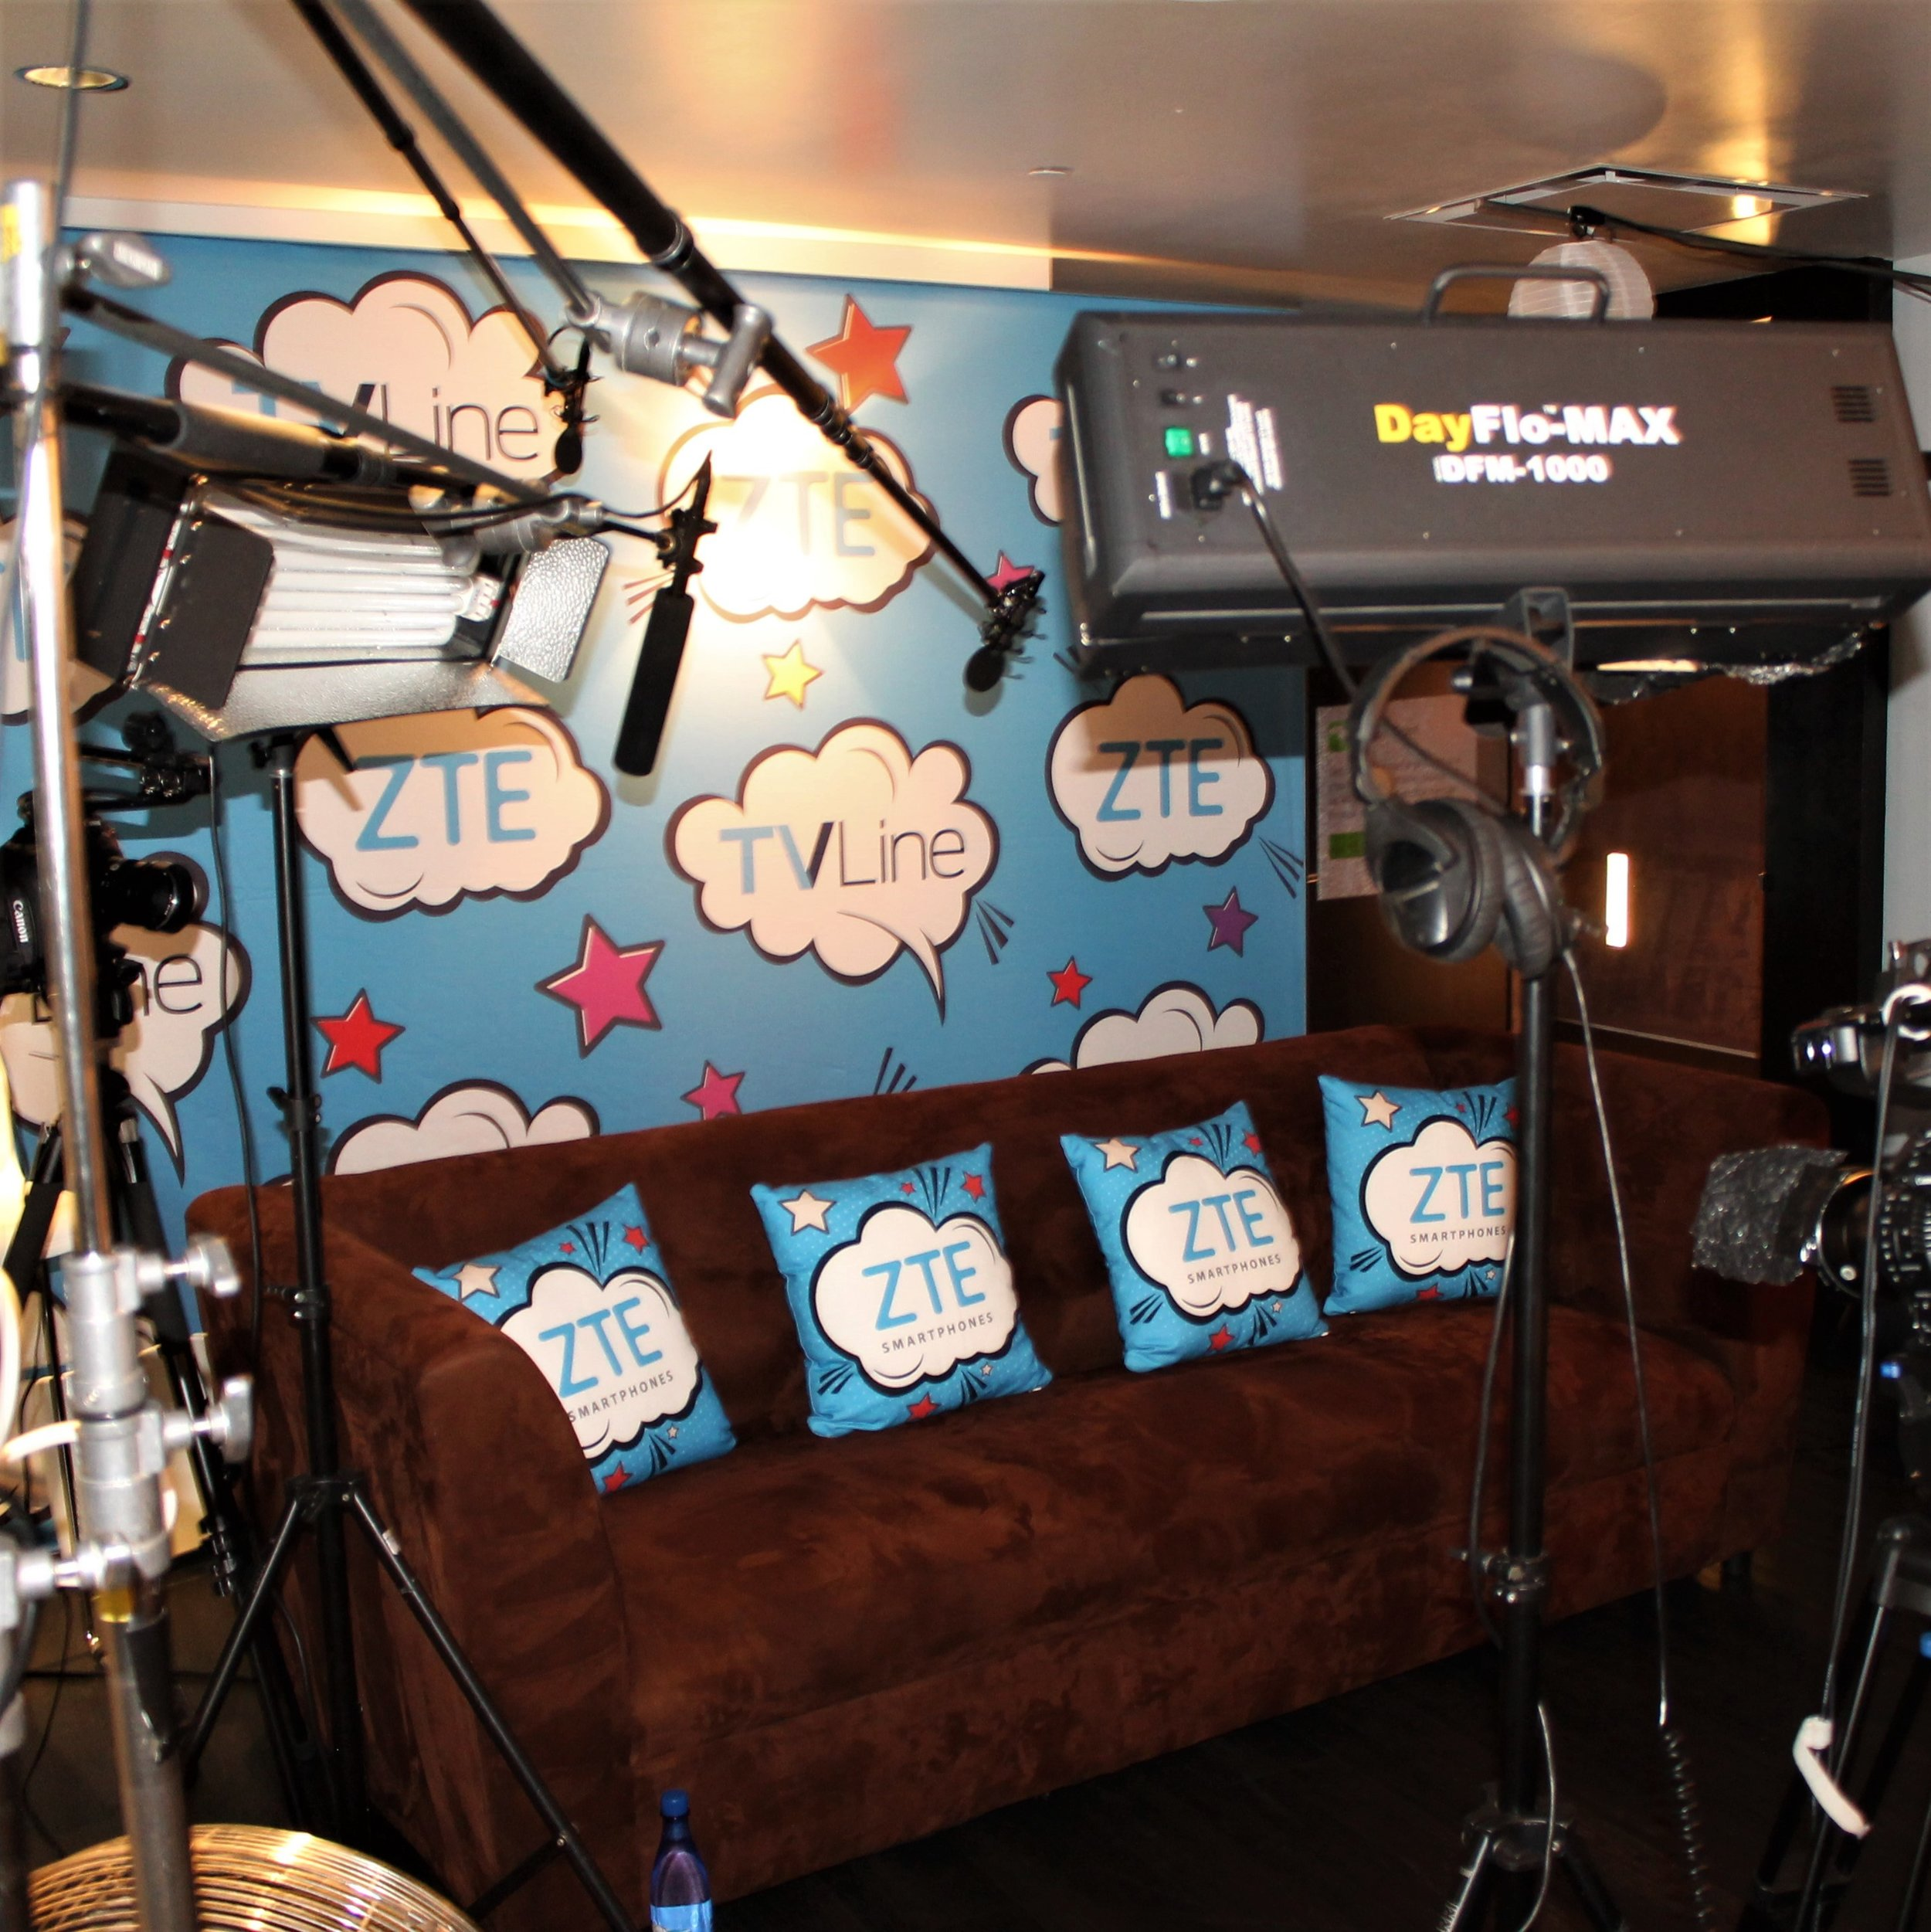 TVLine Interview Studio & Lounge Sponsored by ZTE